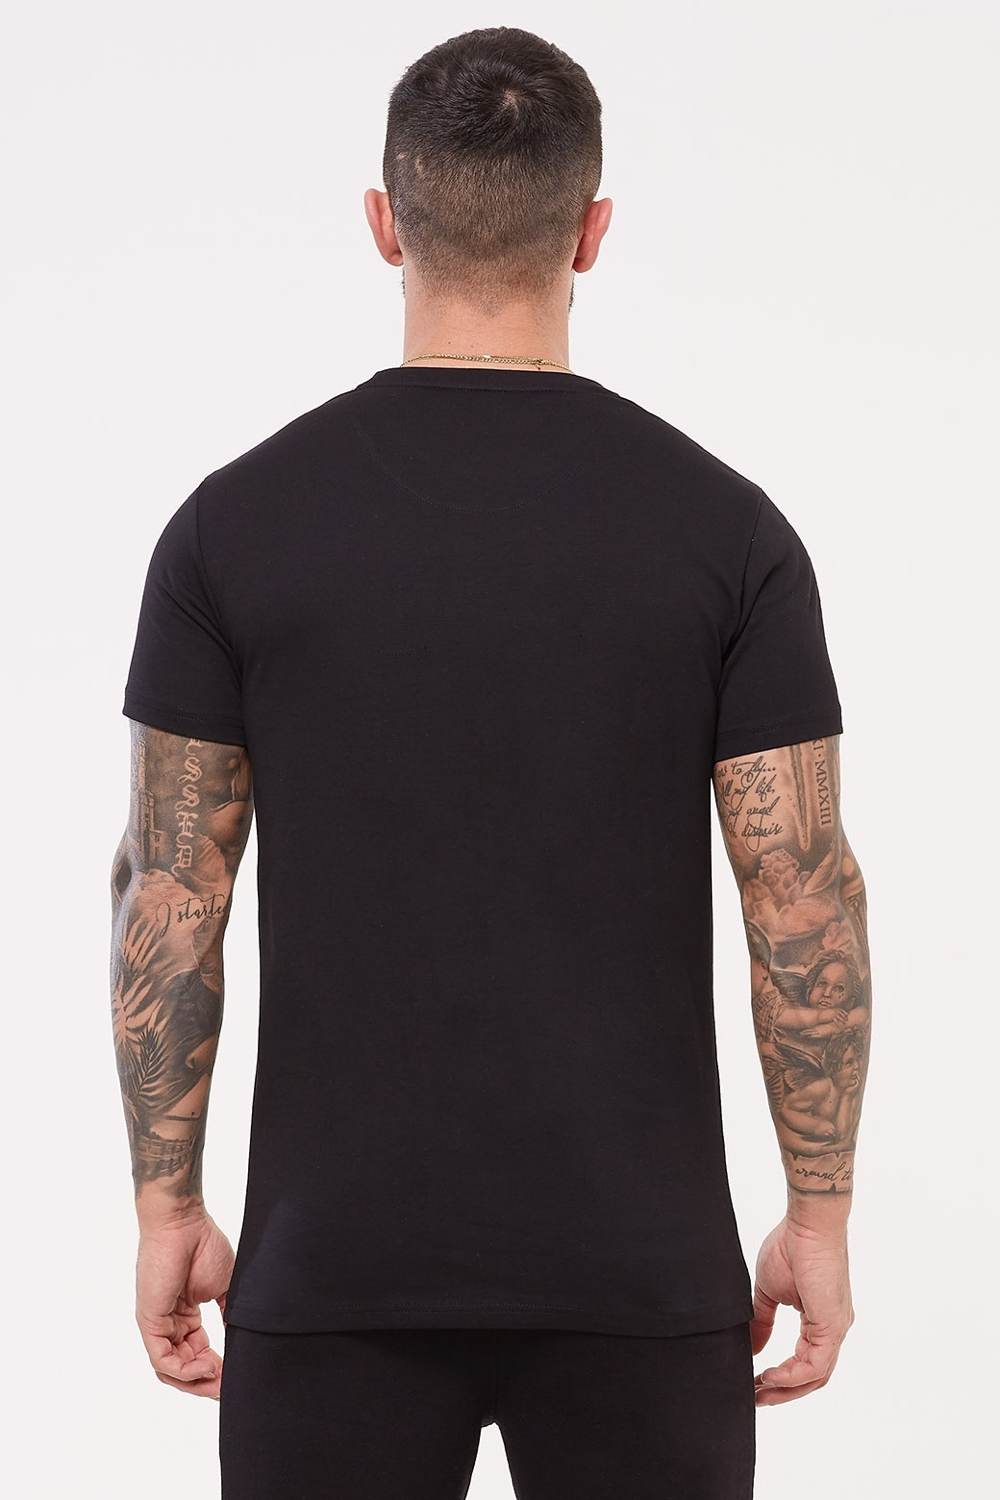 Good For Nothing Future T-shirt - Black - 3